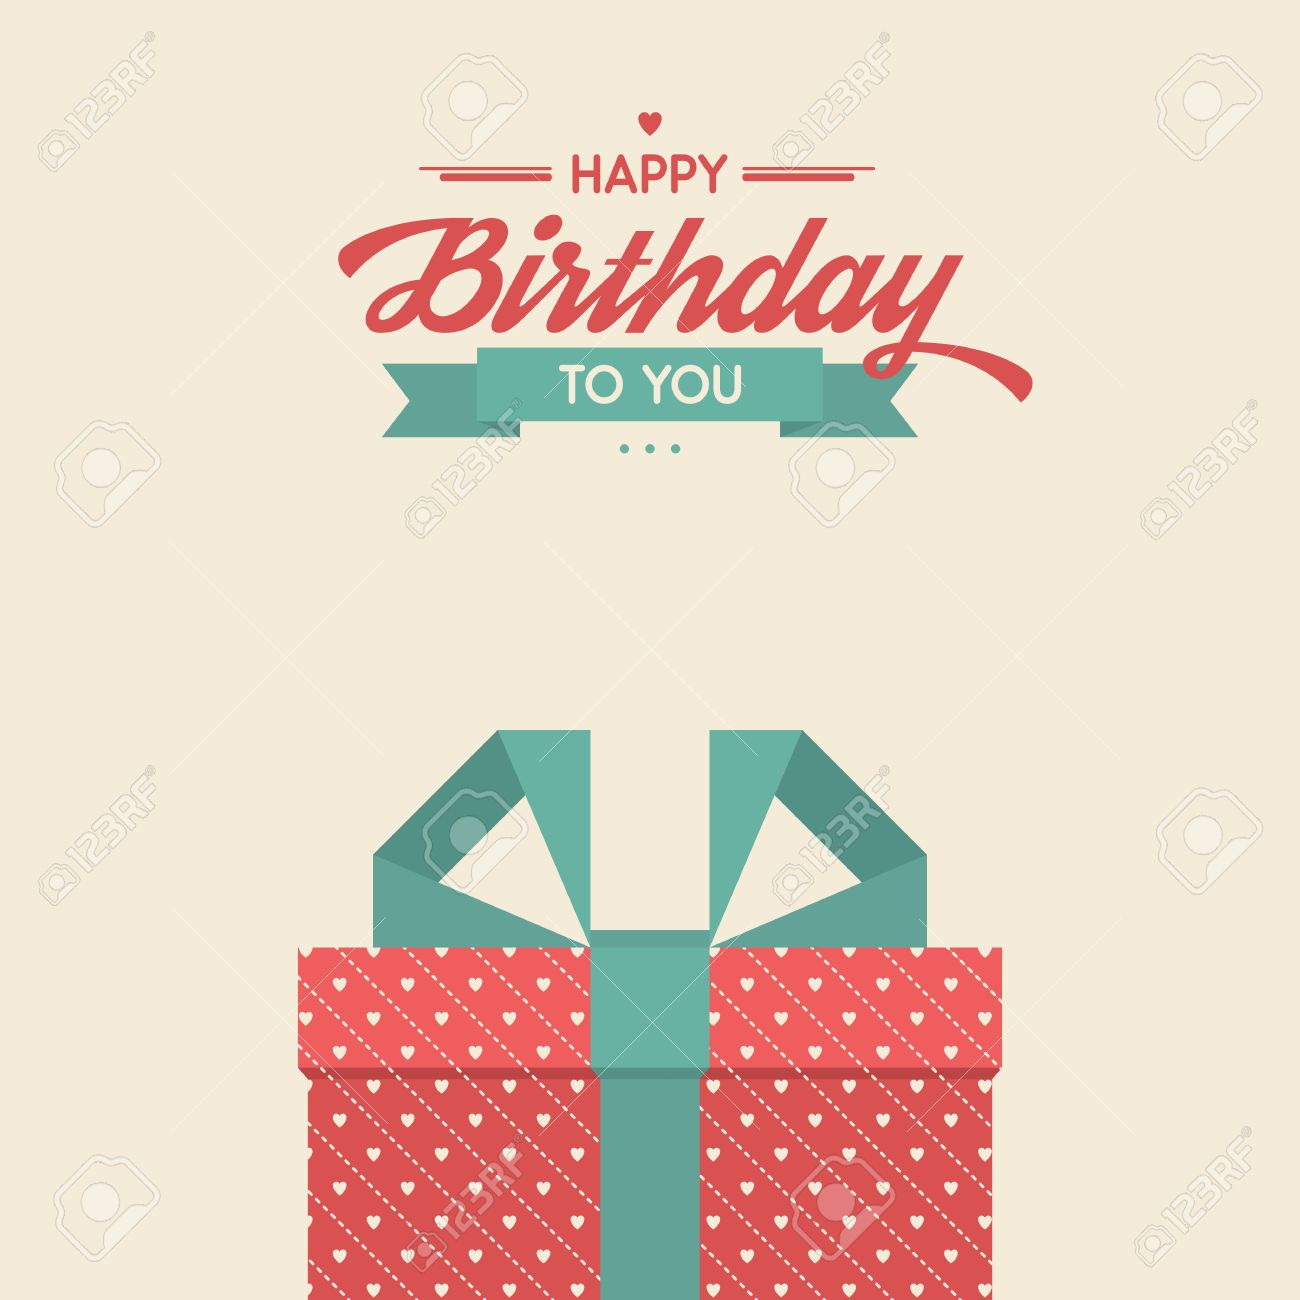 Happy Birthday To You Retro Vector Illustration With Gifts Vintage Background Beautiful Lettering